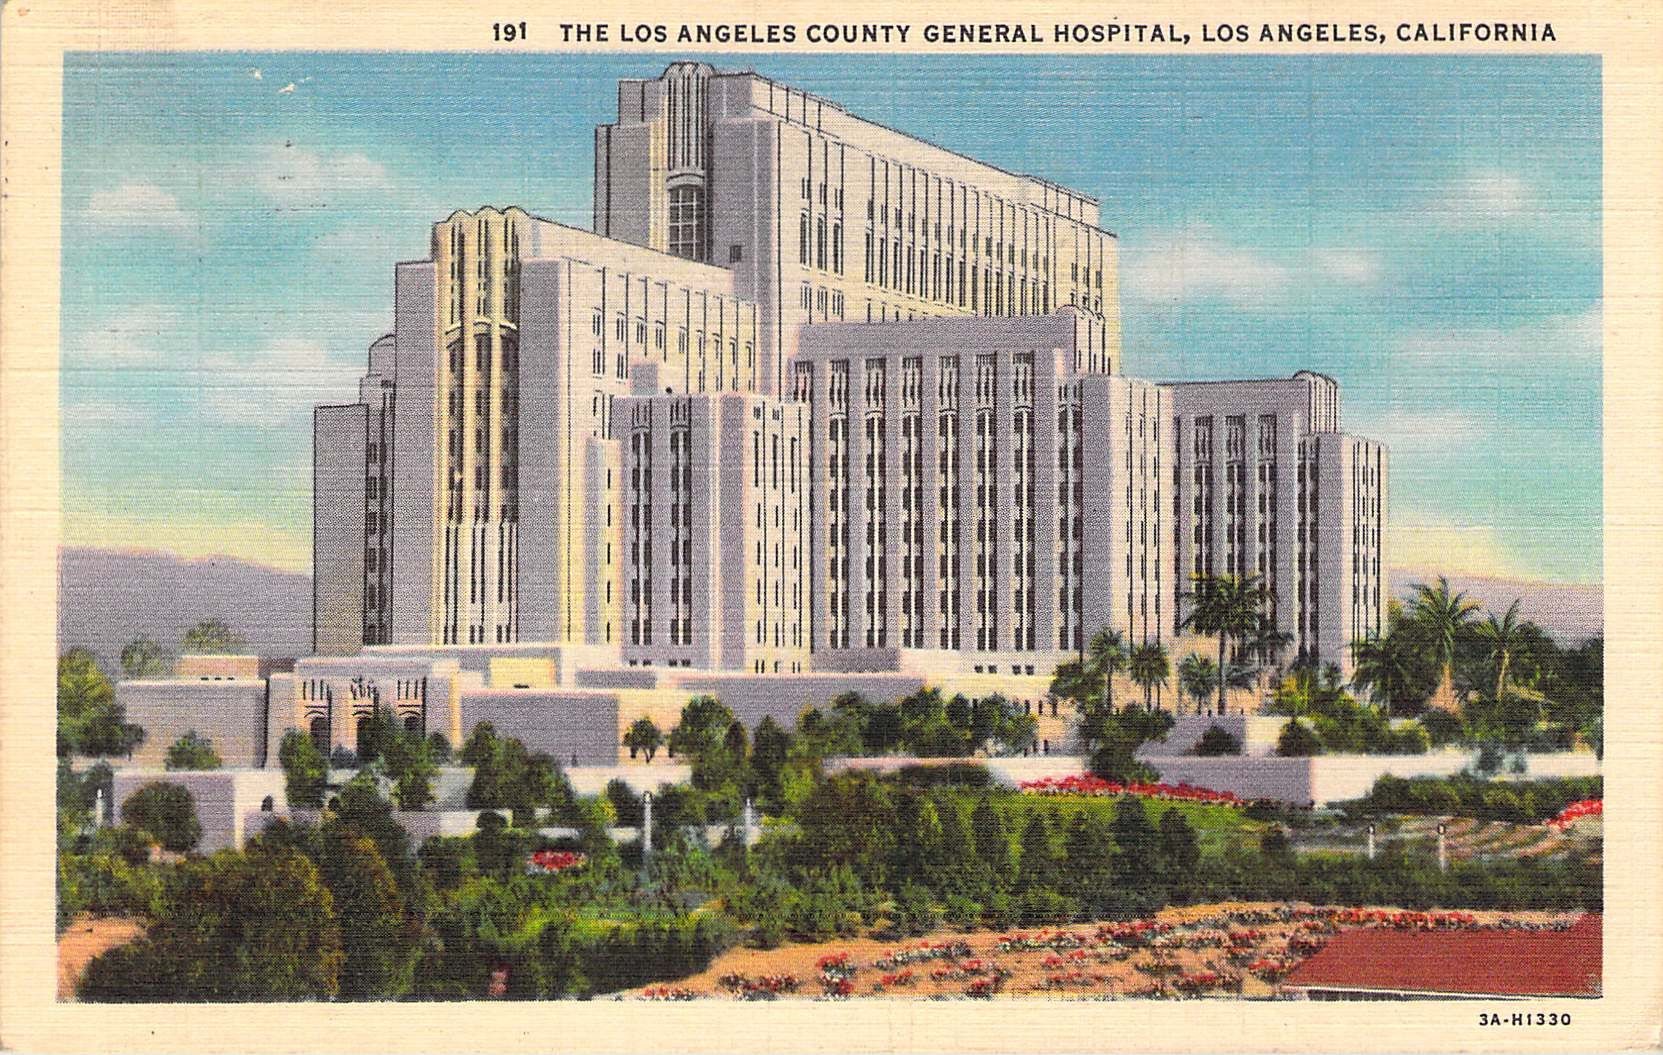 The Los Angeles County General Hospital Los Angeles Ca County Hospital General Hospital Los Angeles